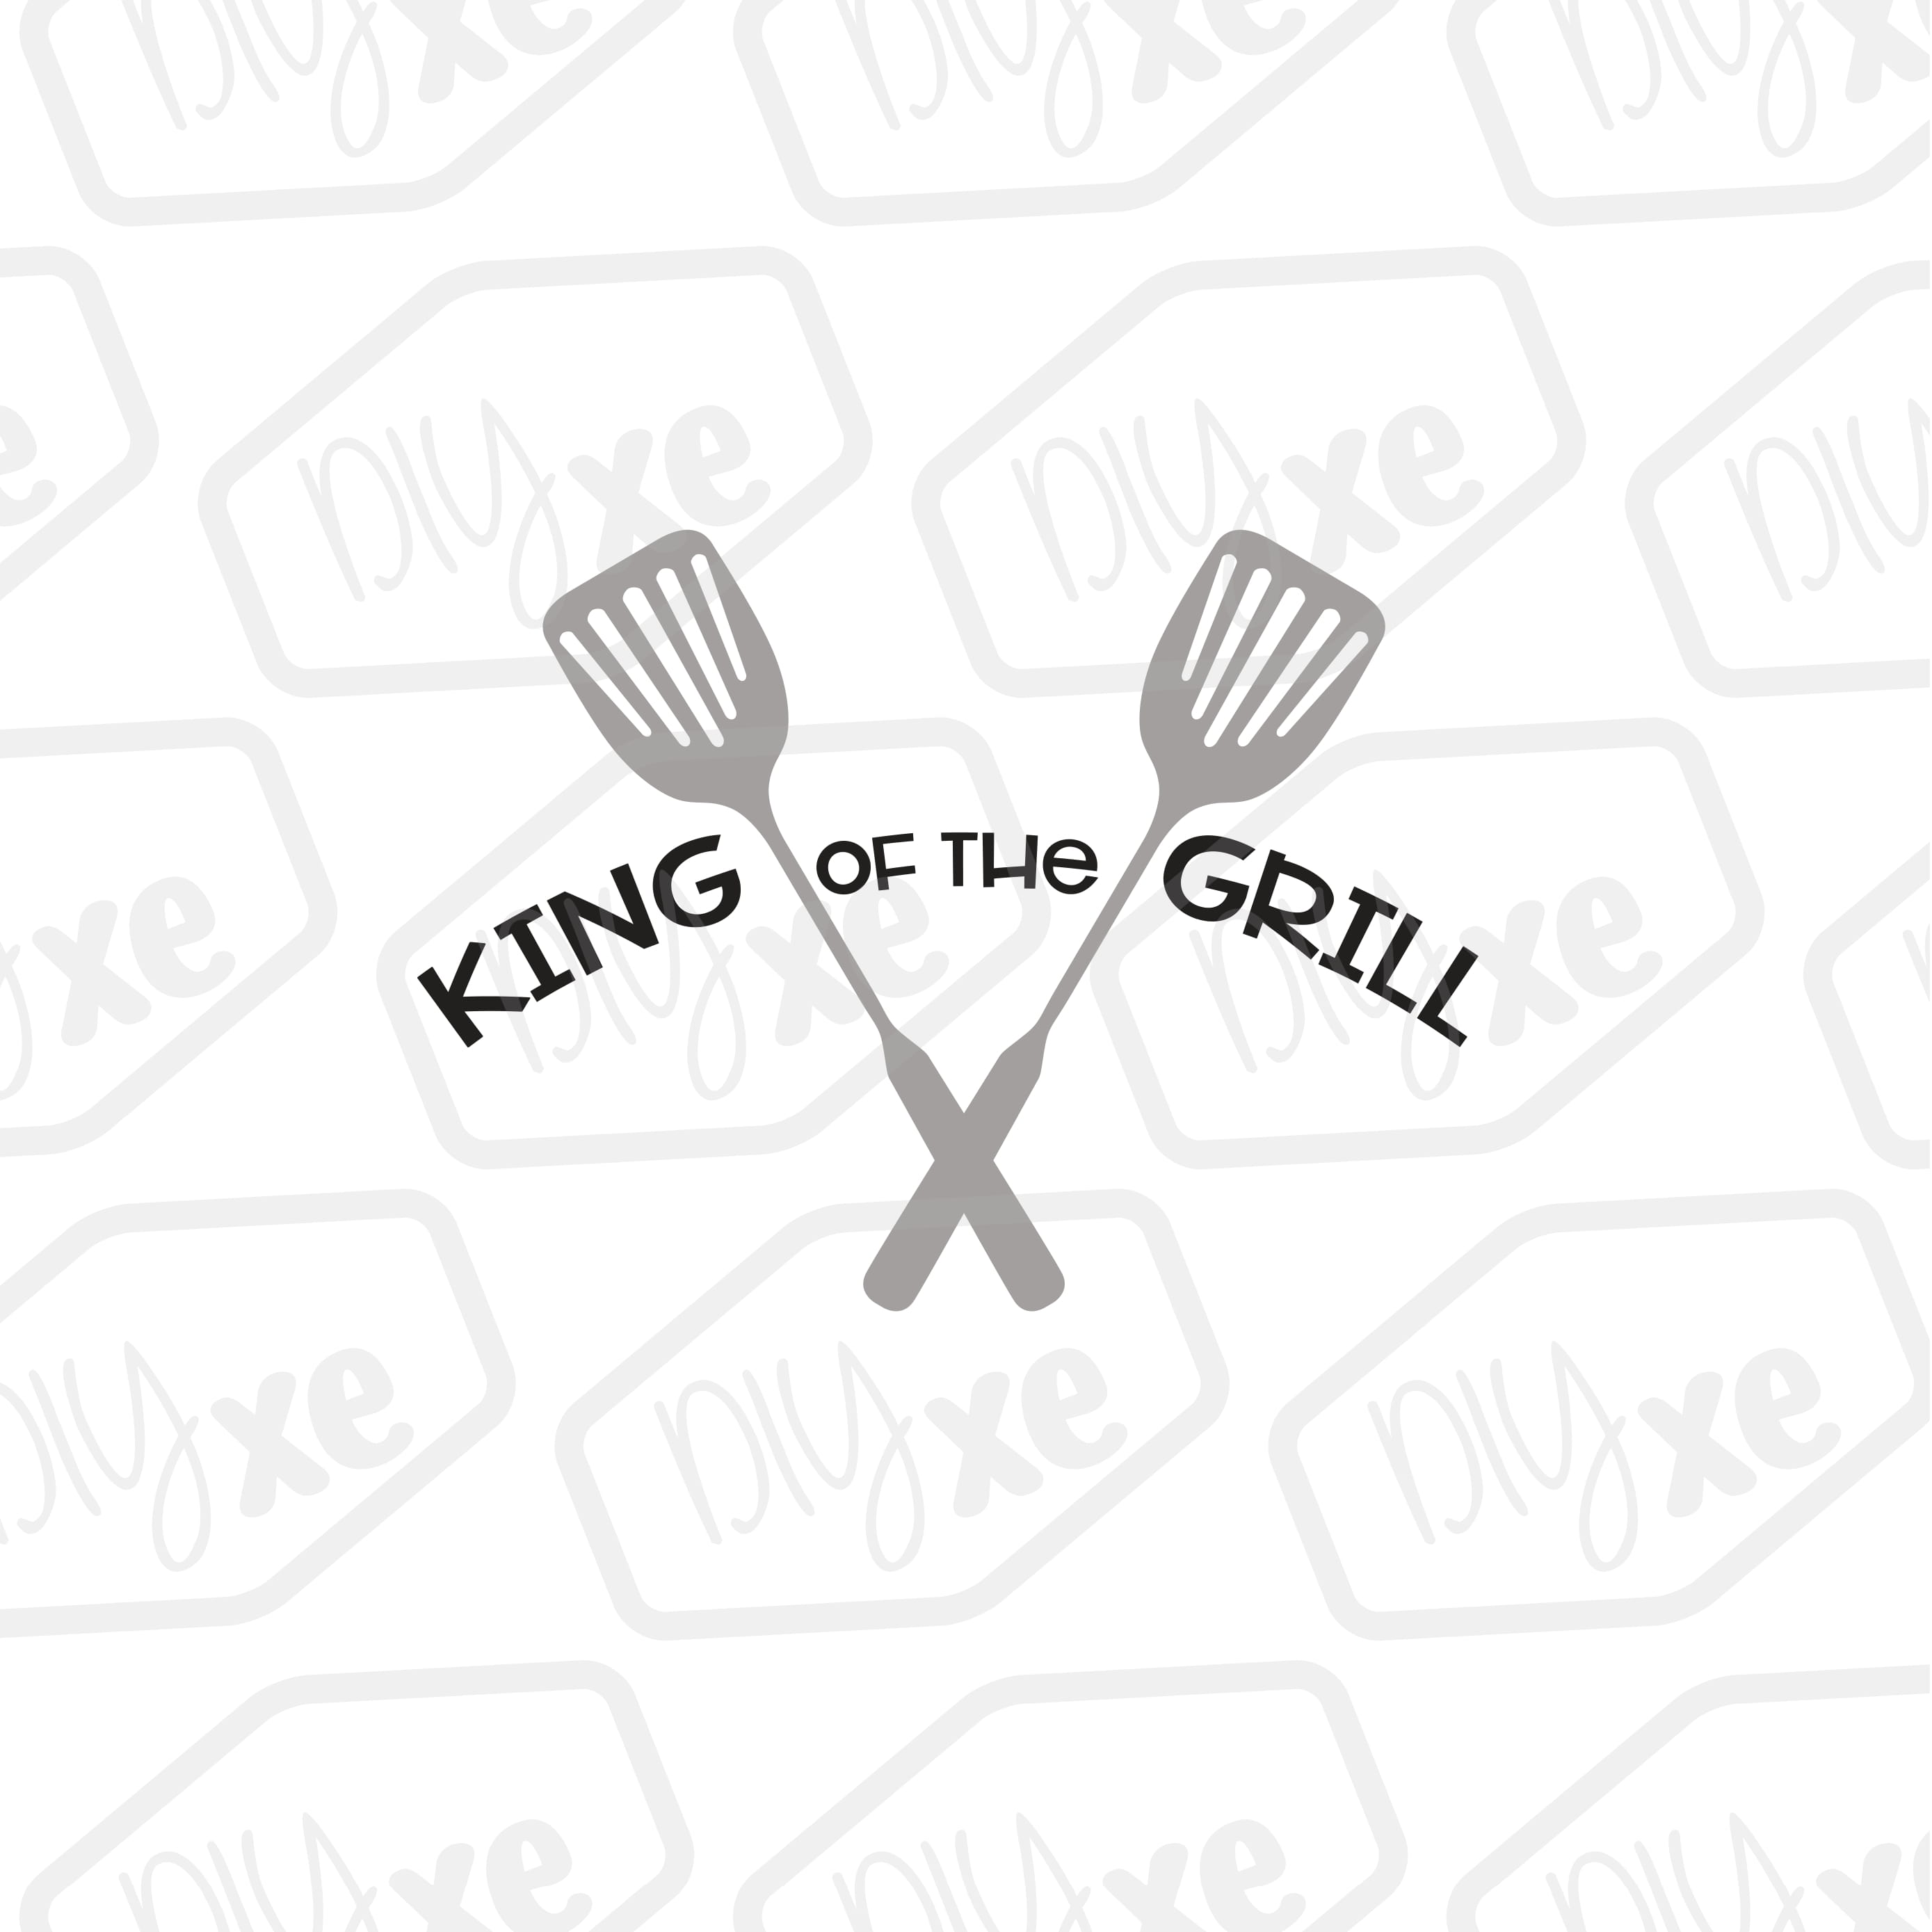 King Of The Grill - A Summer SVG Cut FIle example image 1